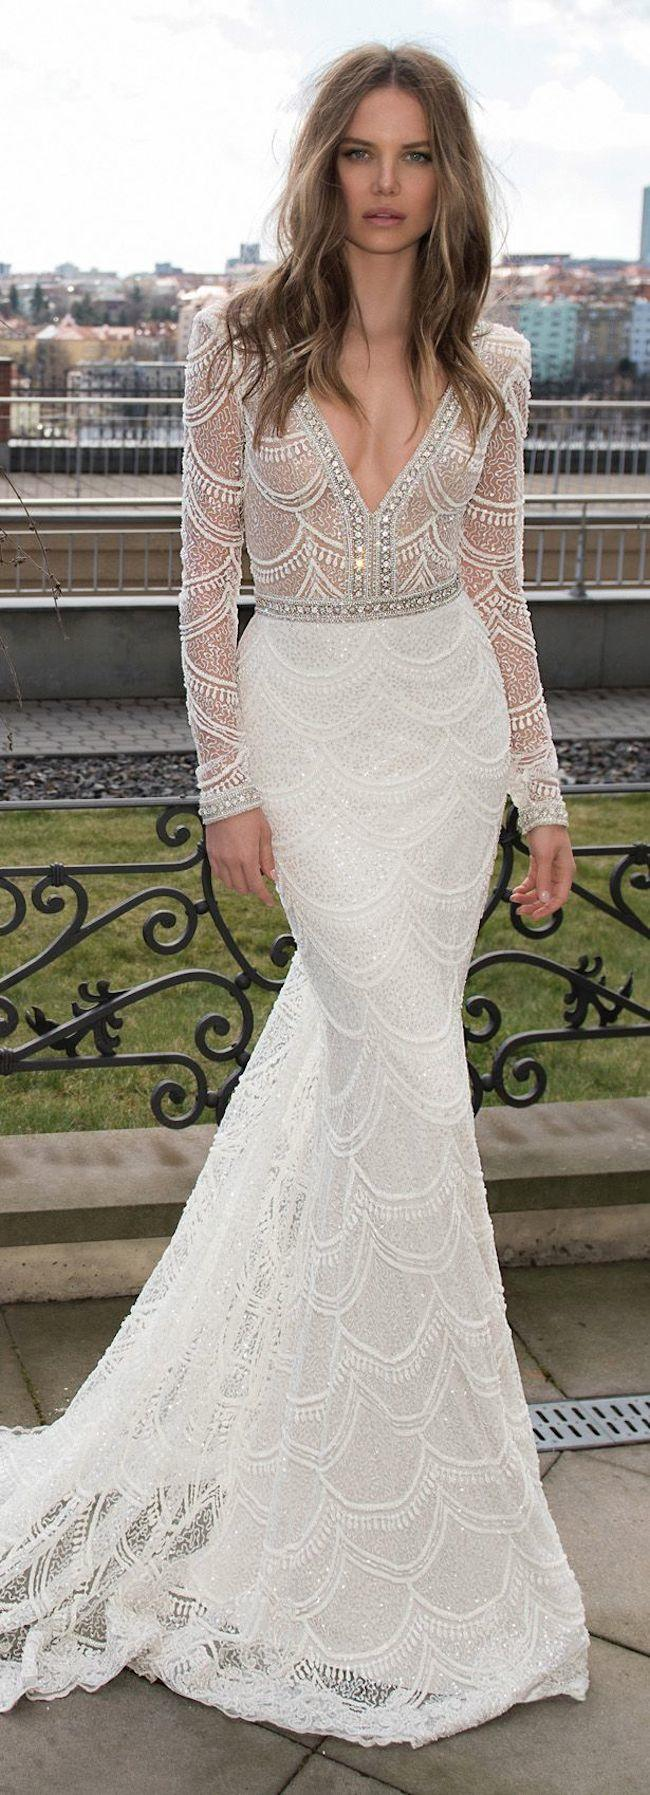 long-sleeve-wedding-dress-12-082115ch